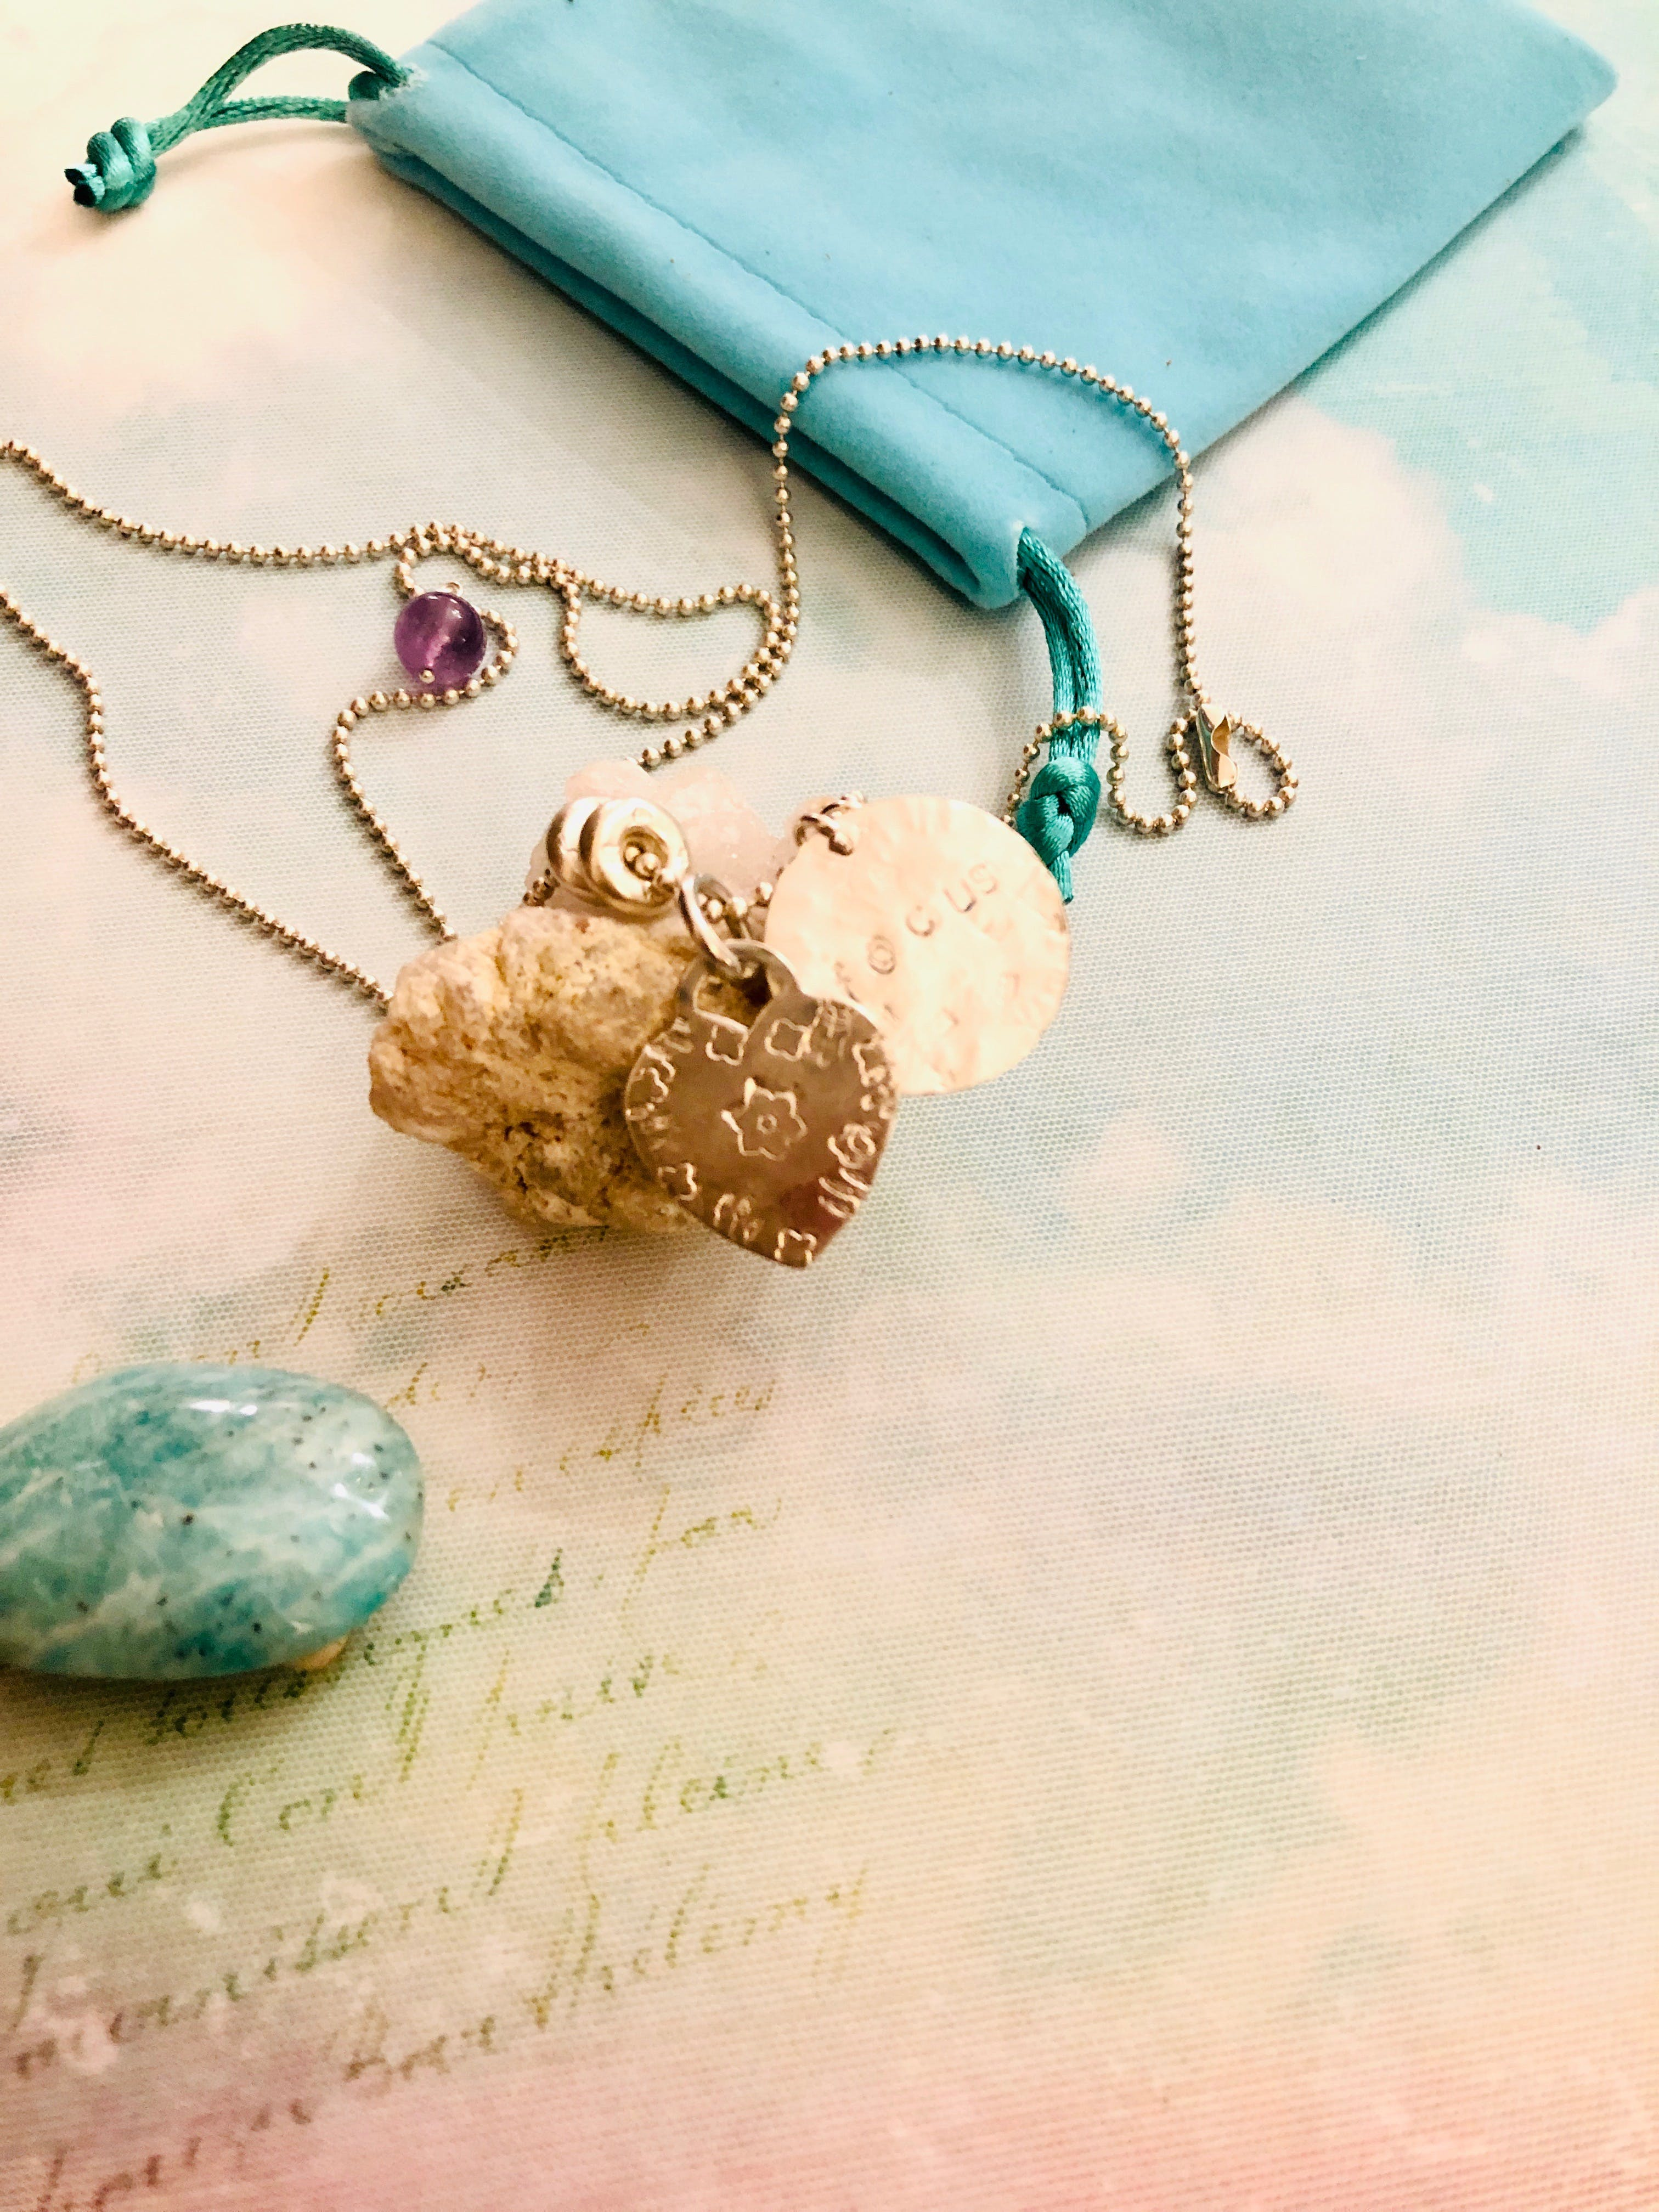 Make Your Own Manifestation Necklace Workshop - Accommodation NSW